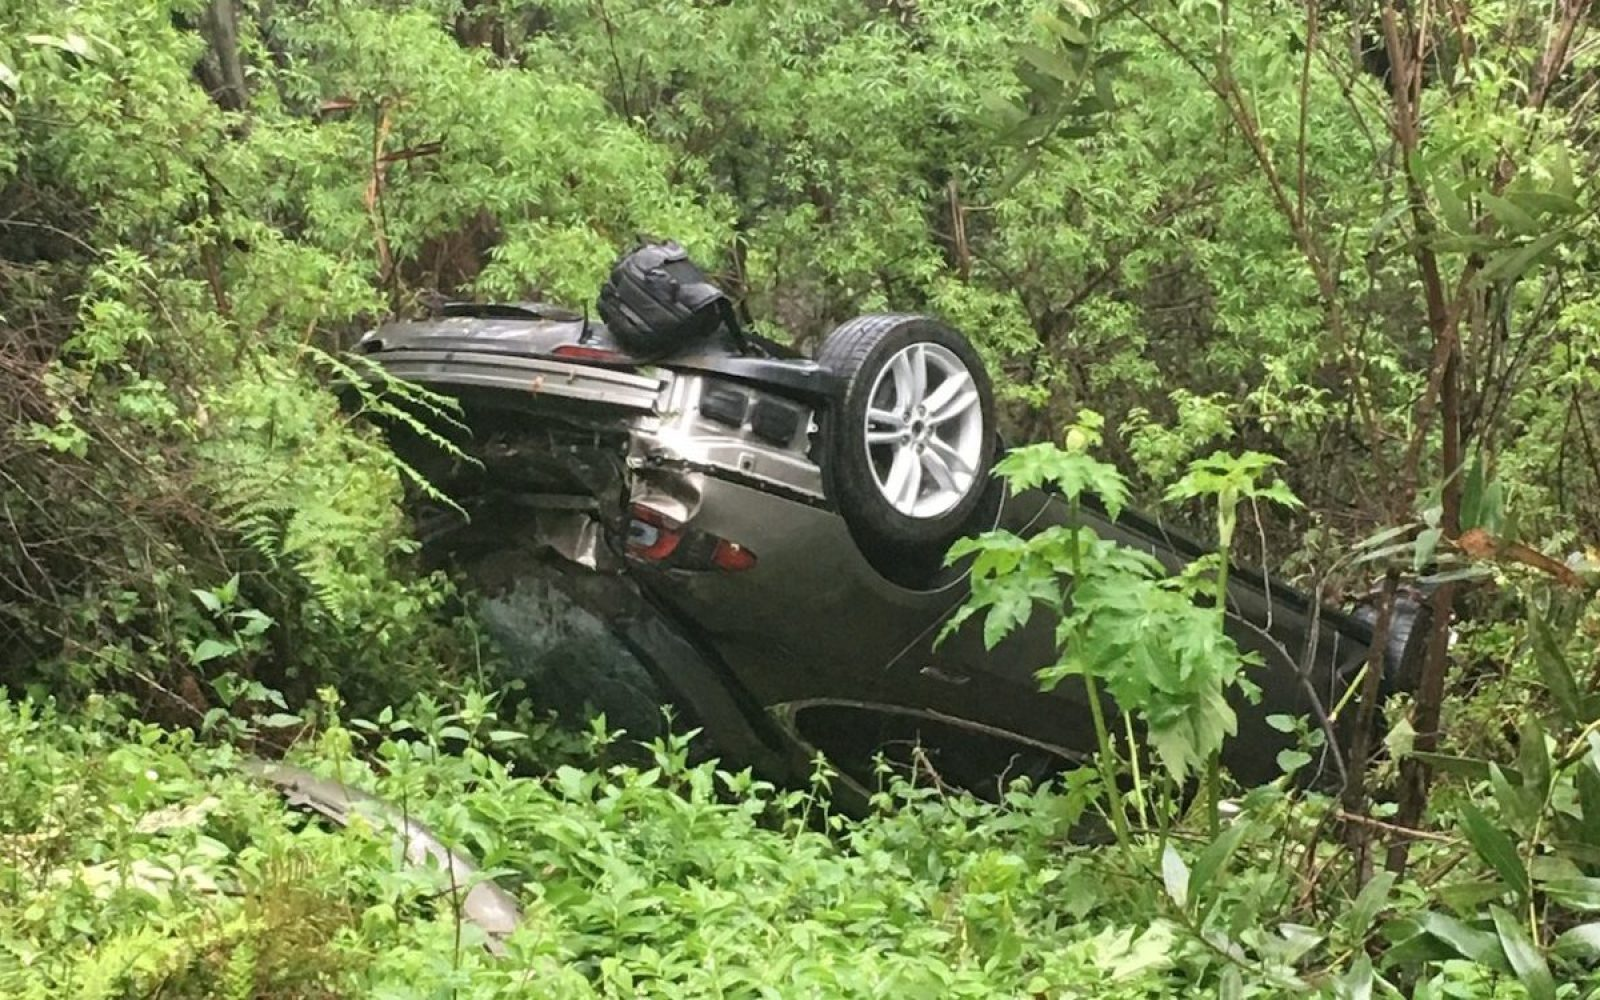 Tesla driver says Model S 'saved his life' after walking away unscathed from a crash ~500-ft down a hill